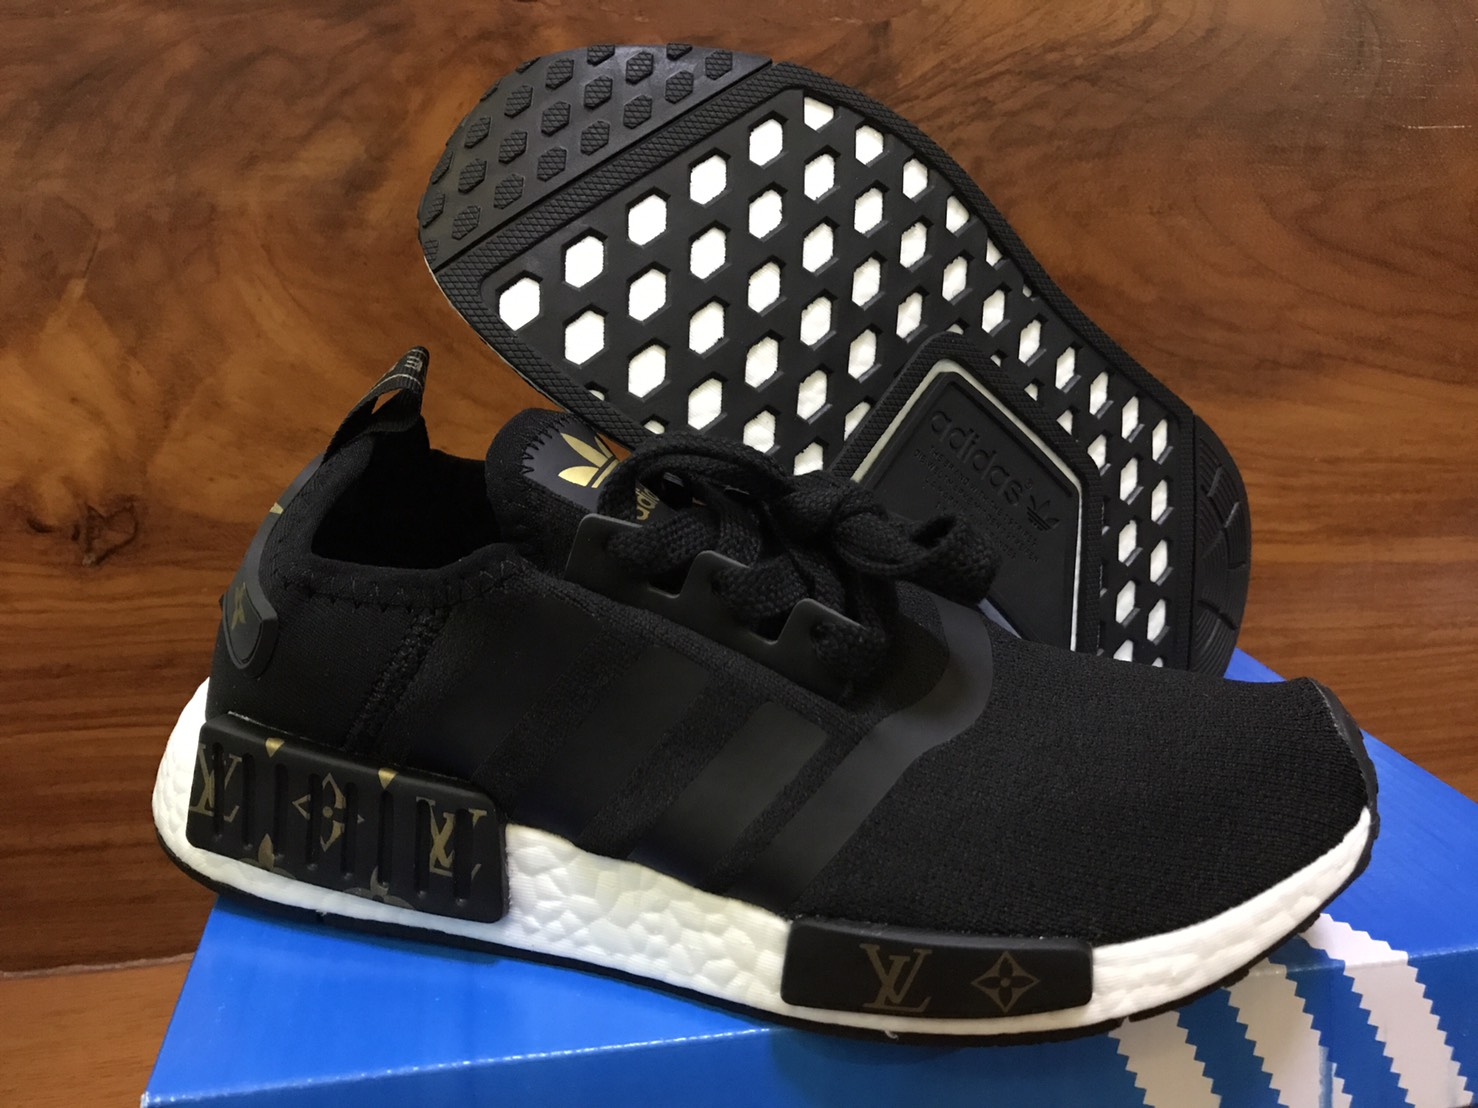 Adidas Nmd Runner Unisex Shoes White Black Lovely 2017